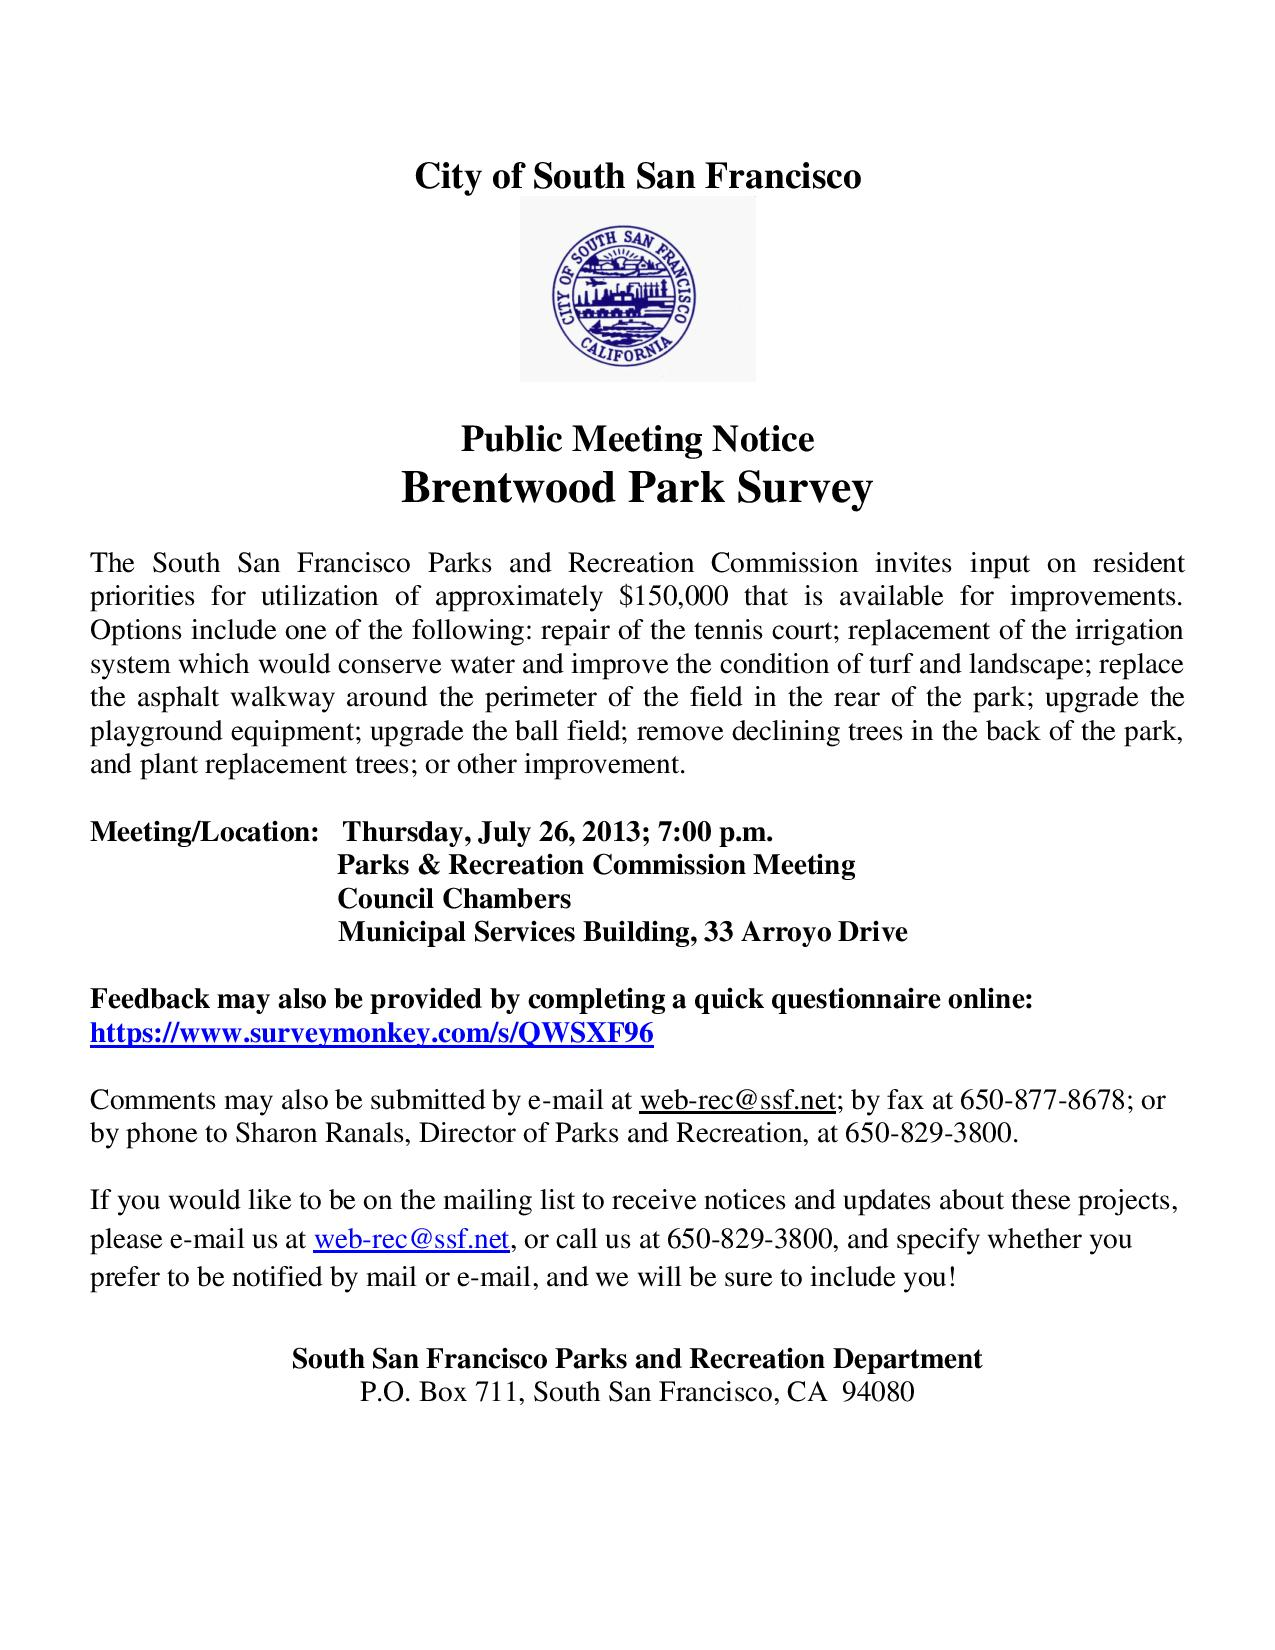 Brentwood Park to see renovation MTG: THUR July 25